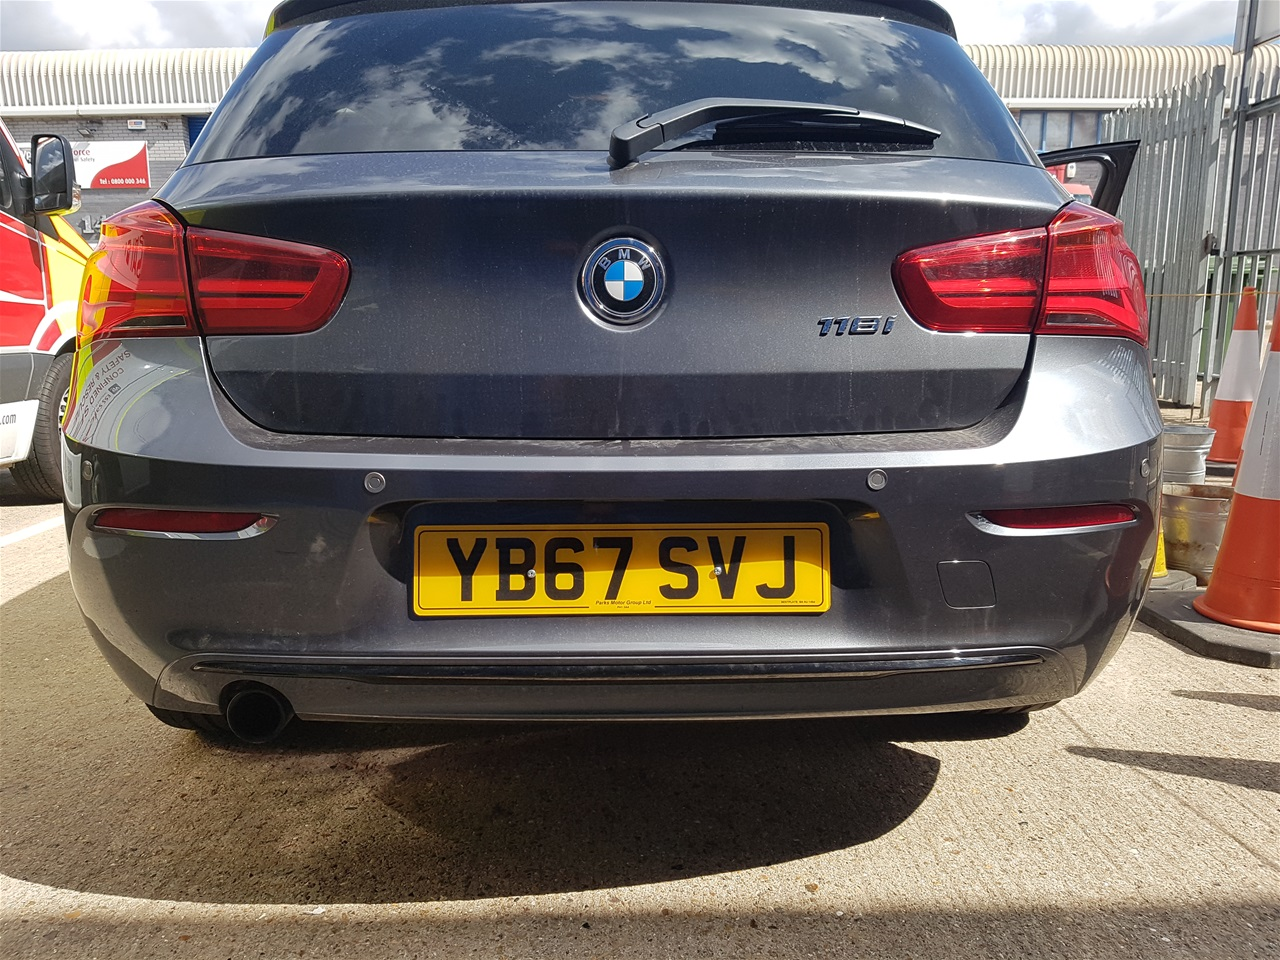 BMW 1 series rear colour coded parking sensors